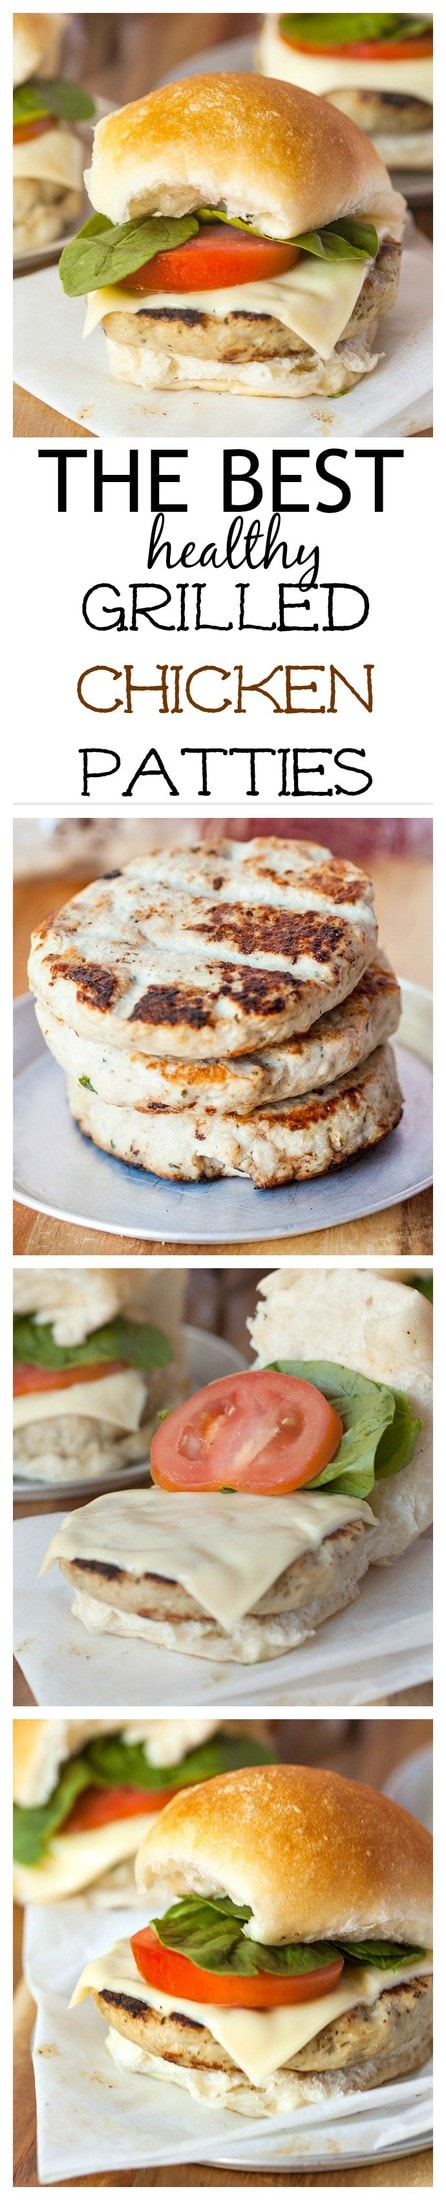 The BEST {healthy!} Grilled Chicken Patties- The most delicious, best chicken patties without the need for any flours or grains! Gluten free, paleo friendly and so easy, it will be a guaranteed favourite! Easy to adapt for those following a low carb, high protein lifestyle! @thebigmansworld- thebigmansworld.com